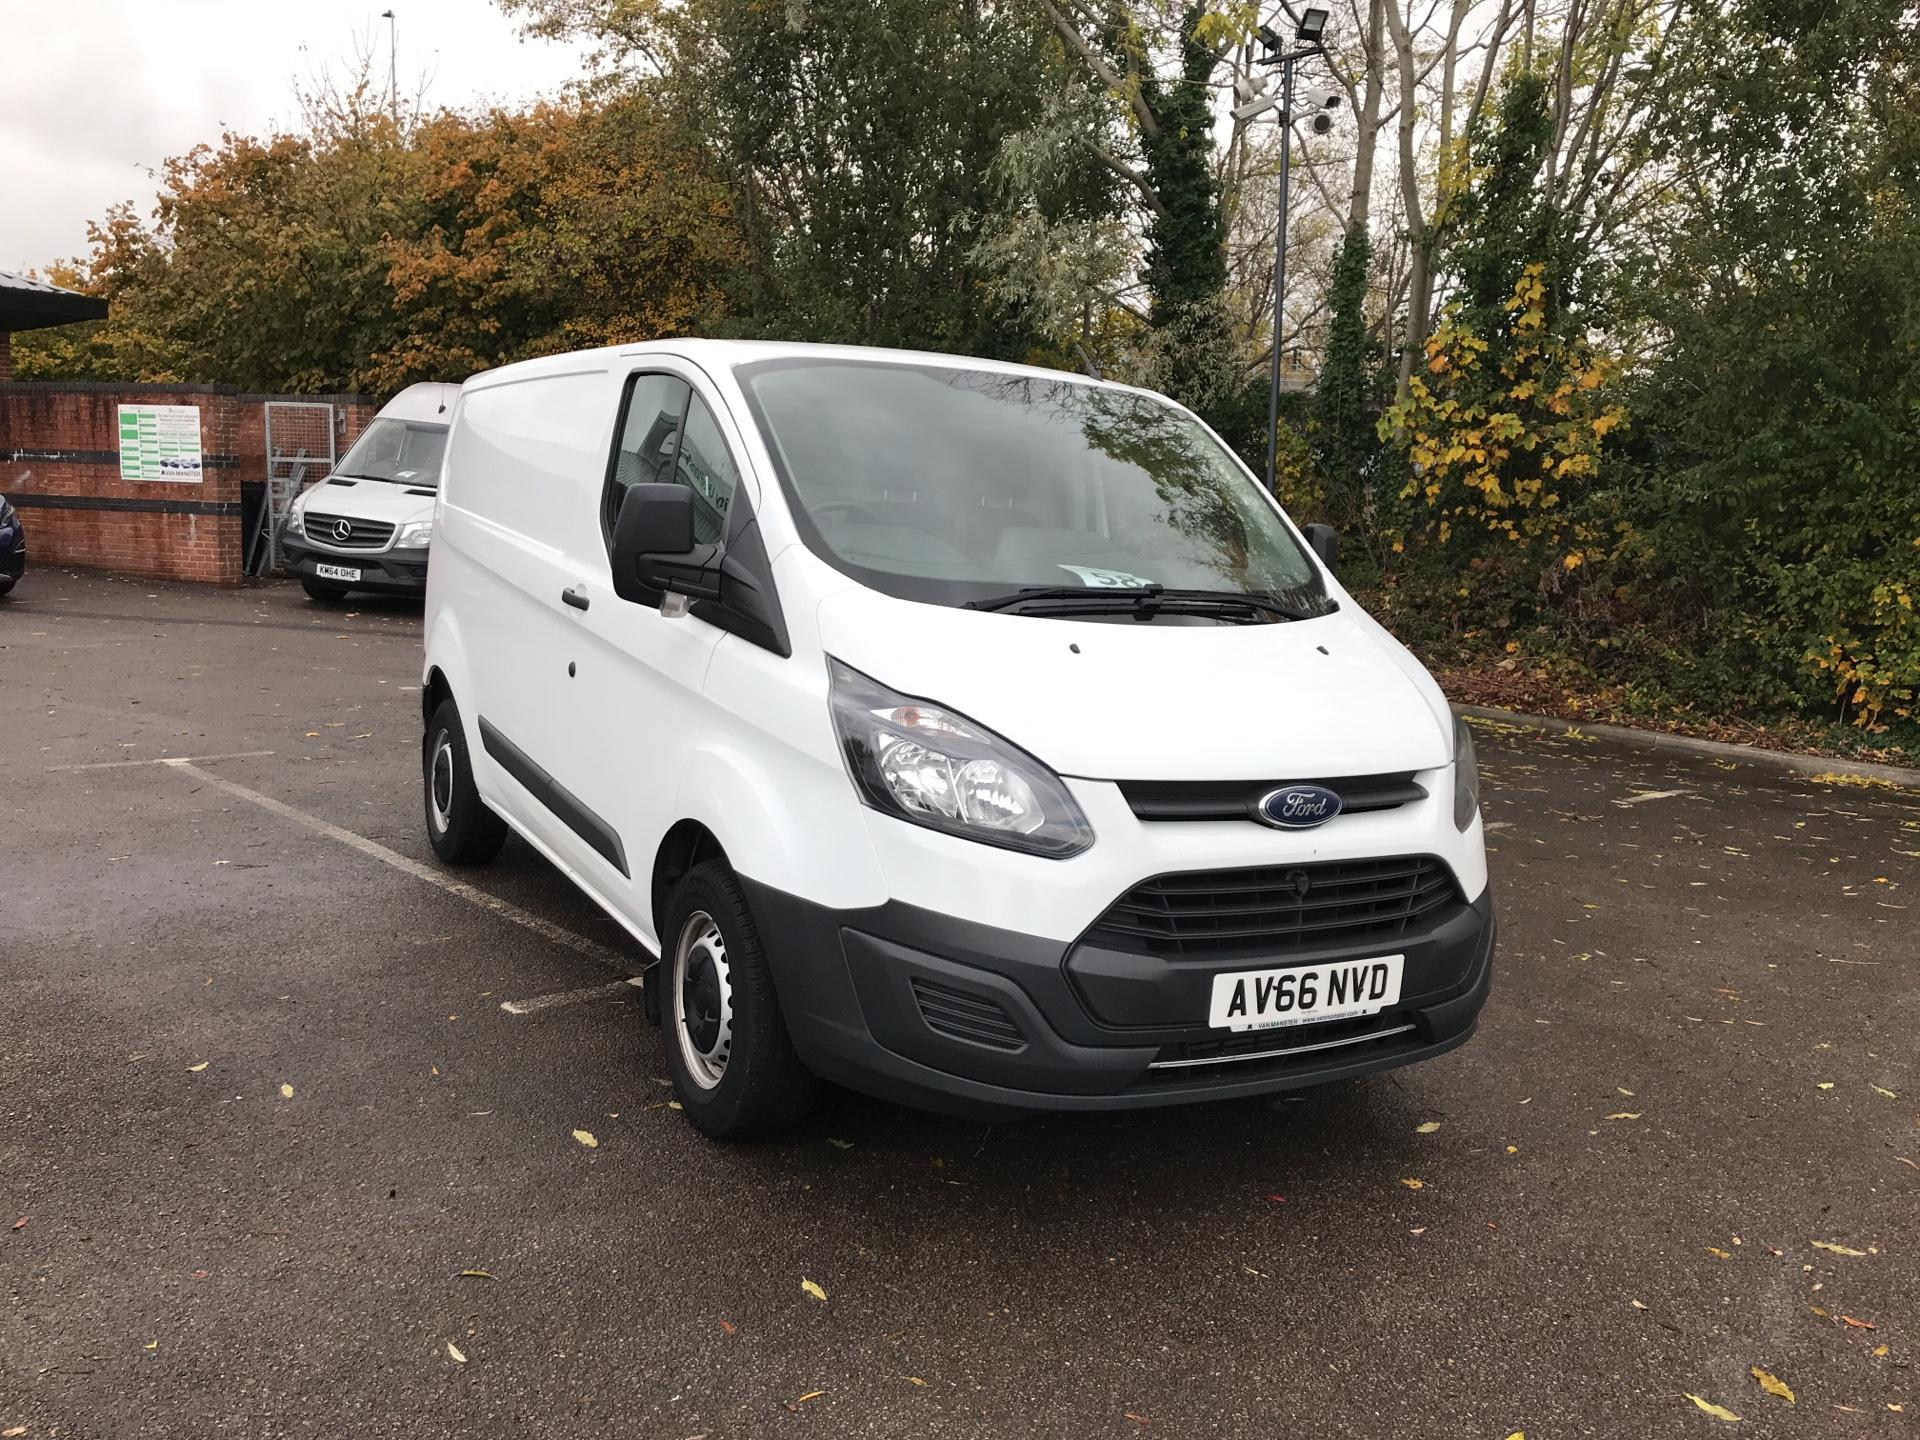 2016 Ford Transit Custom  290 L1 DIESEL FWD 2.0 TDCI 105PS LOW ROOF VAN EURO 6 (AV66NVD)